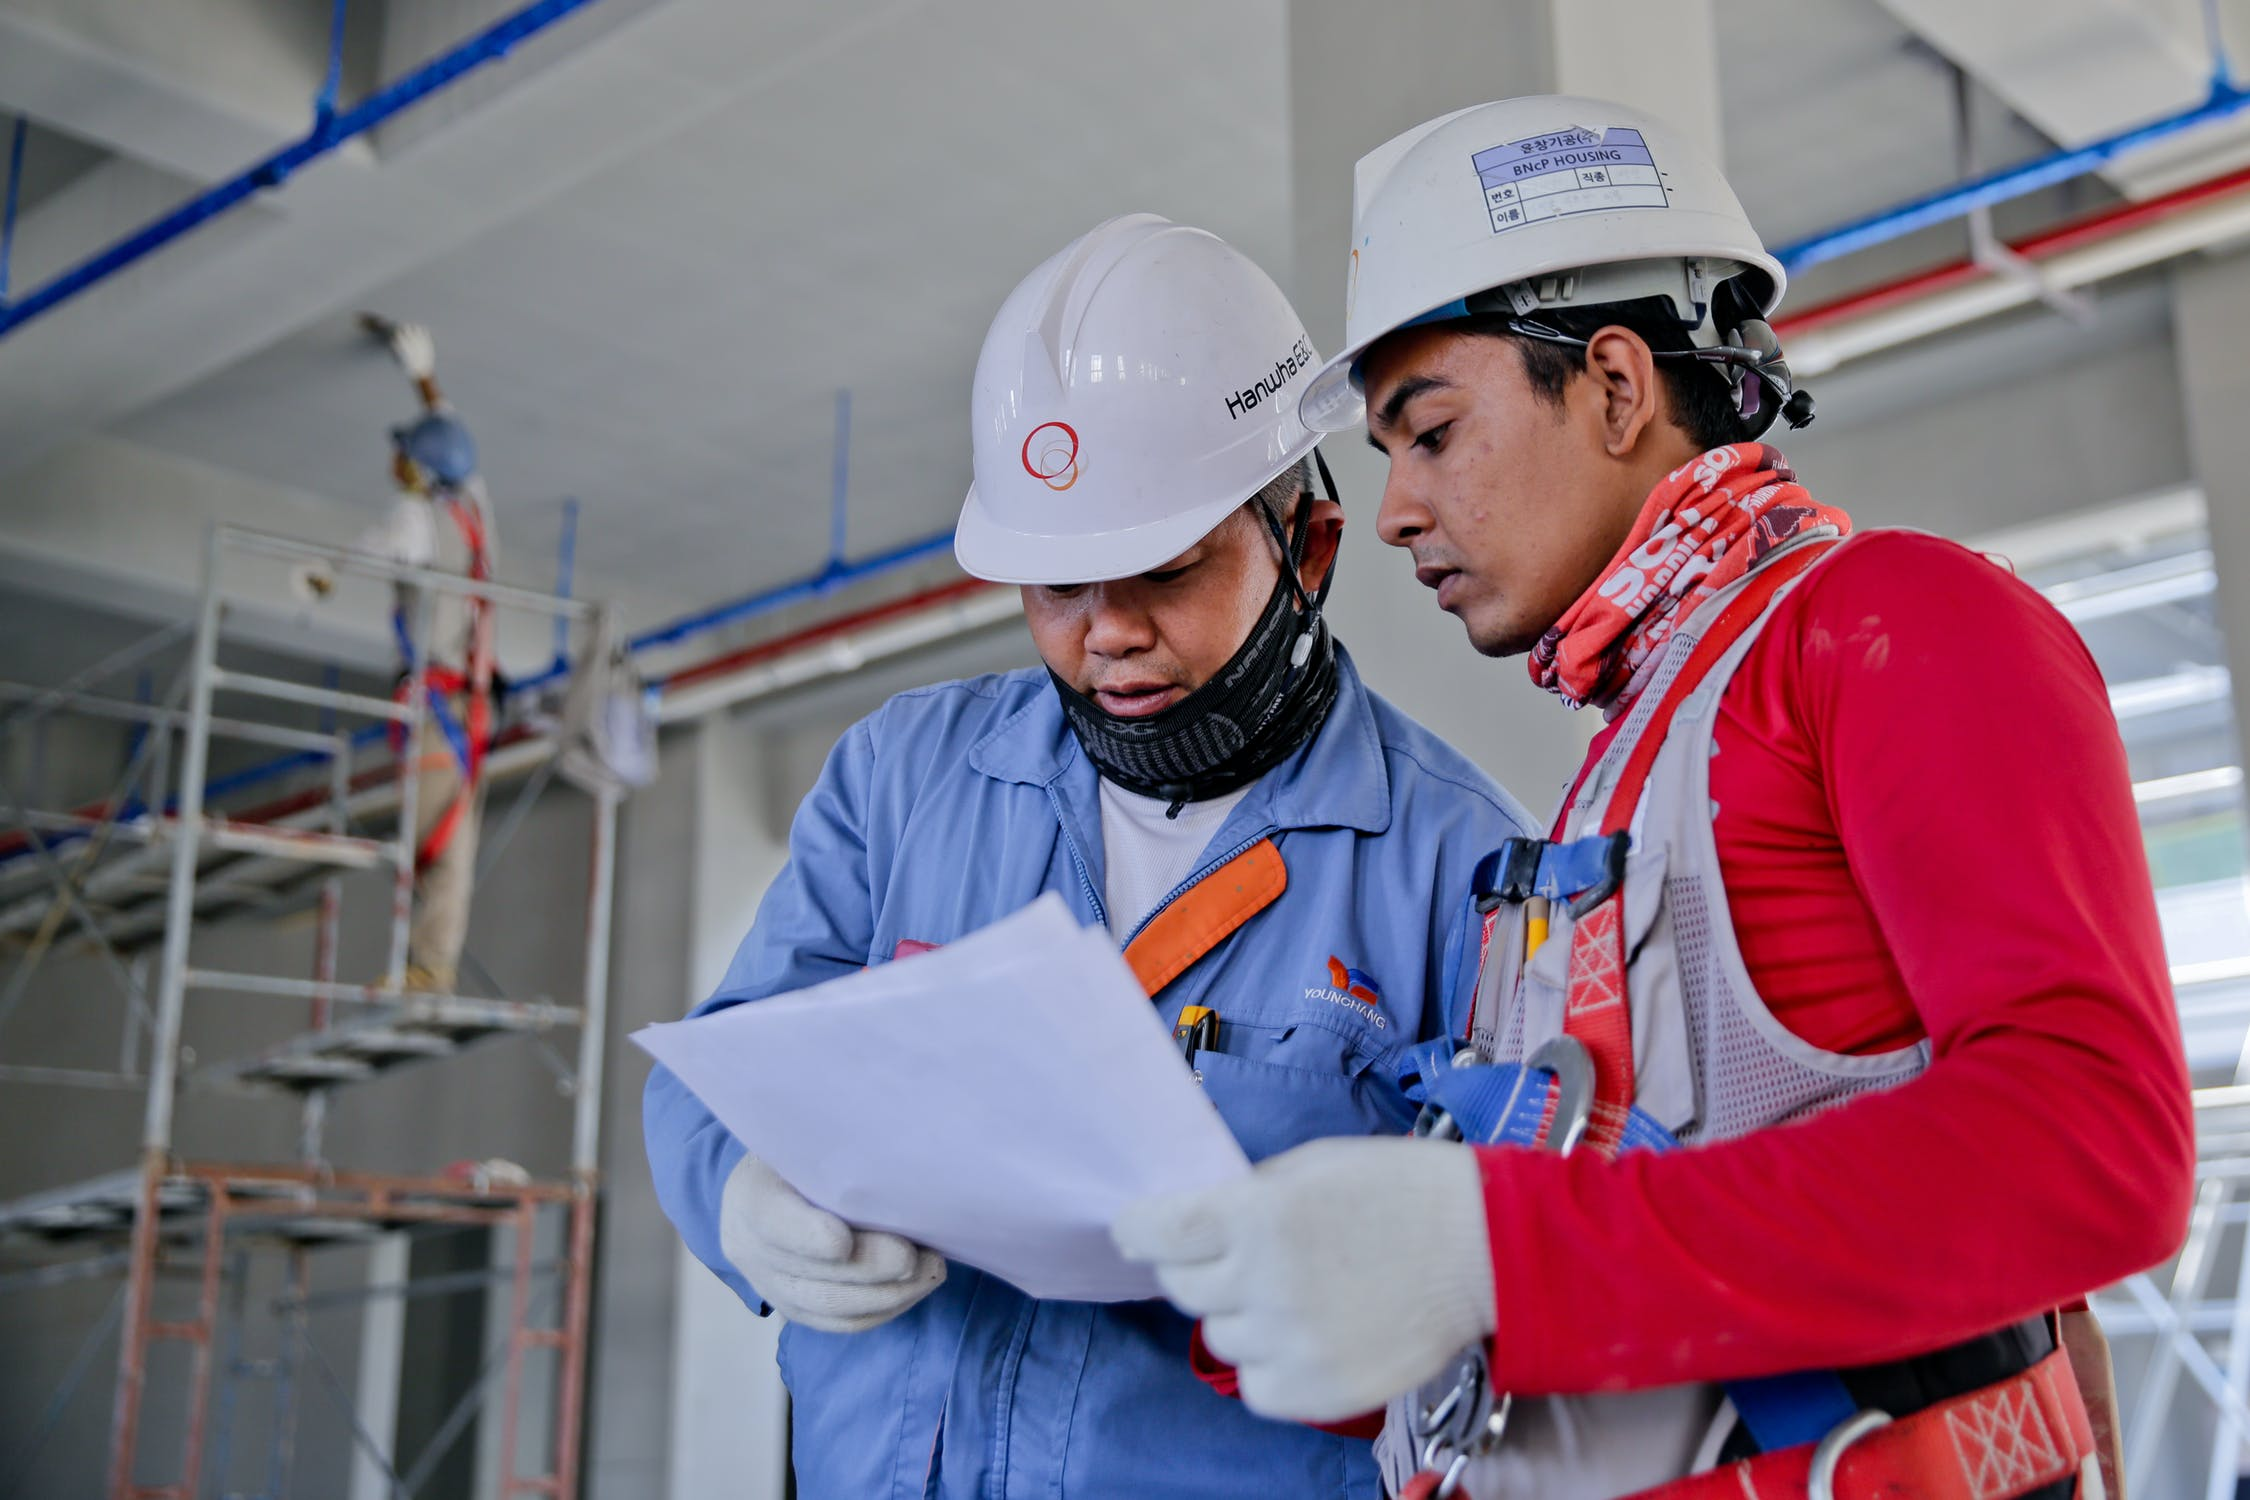 Two men in hard hats look over a blueprint together.